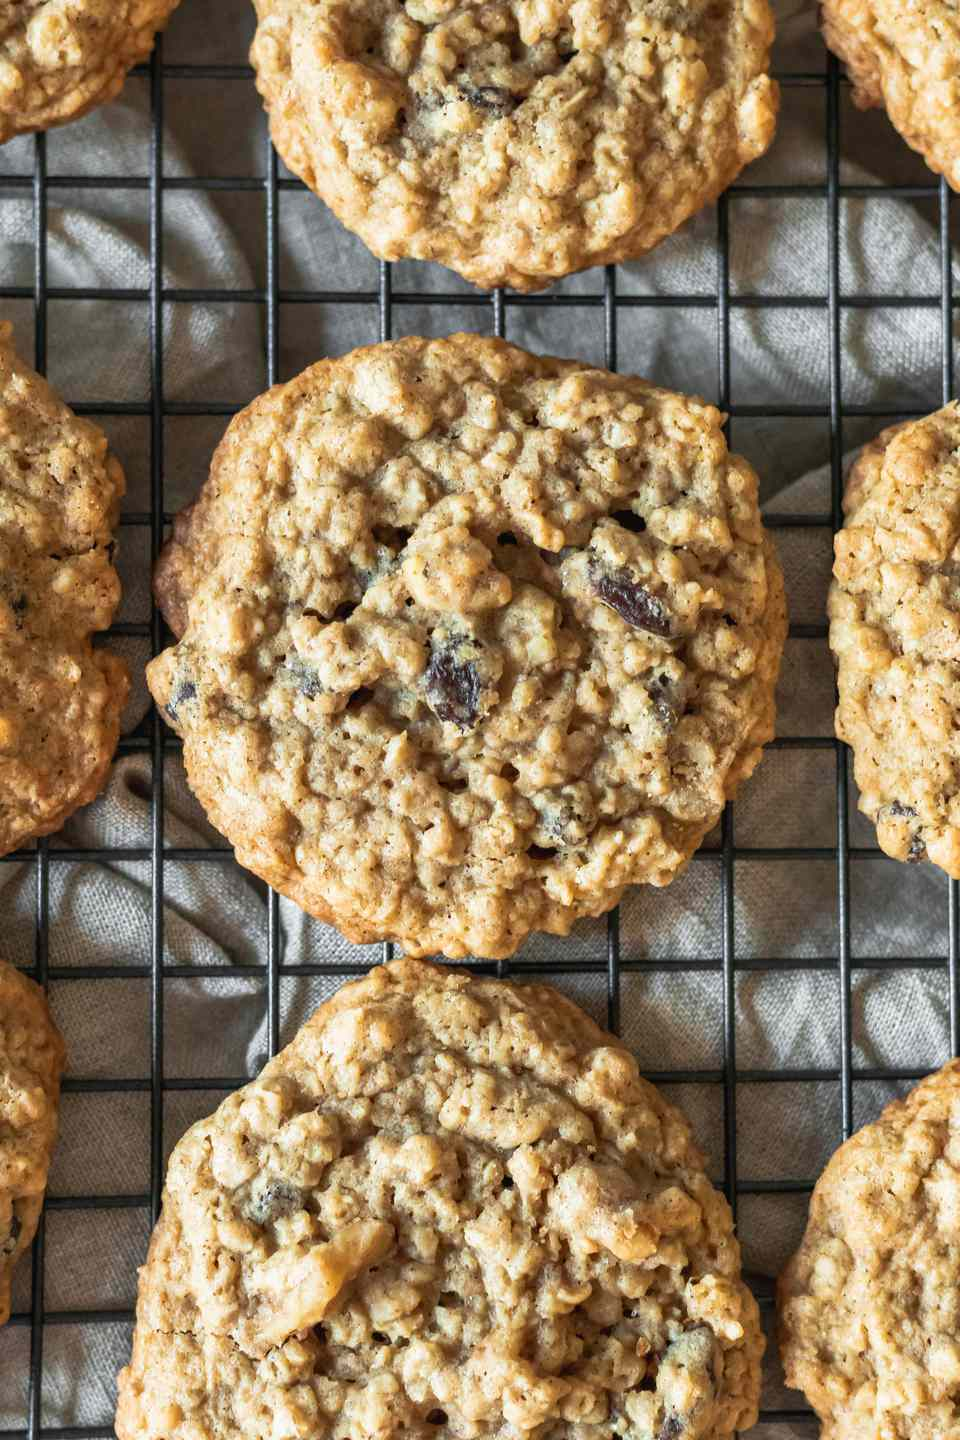 Overhead view of Oatmeal Raisin Cookies cooling on a rack.